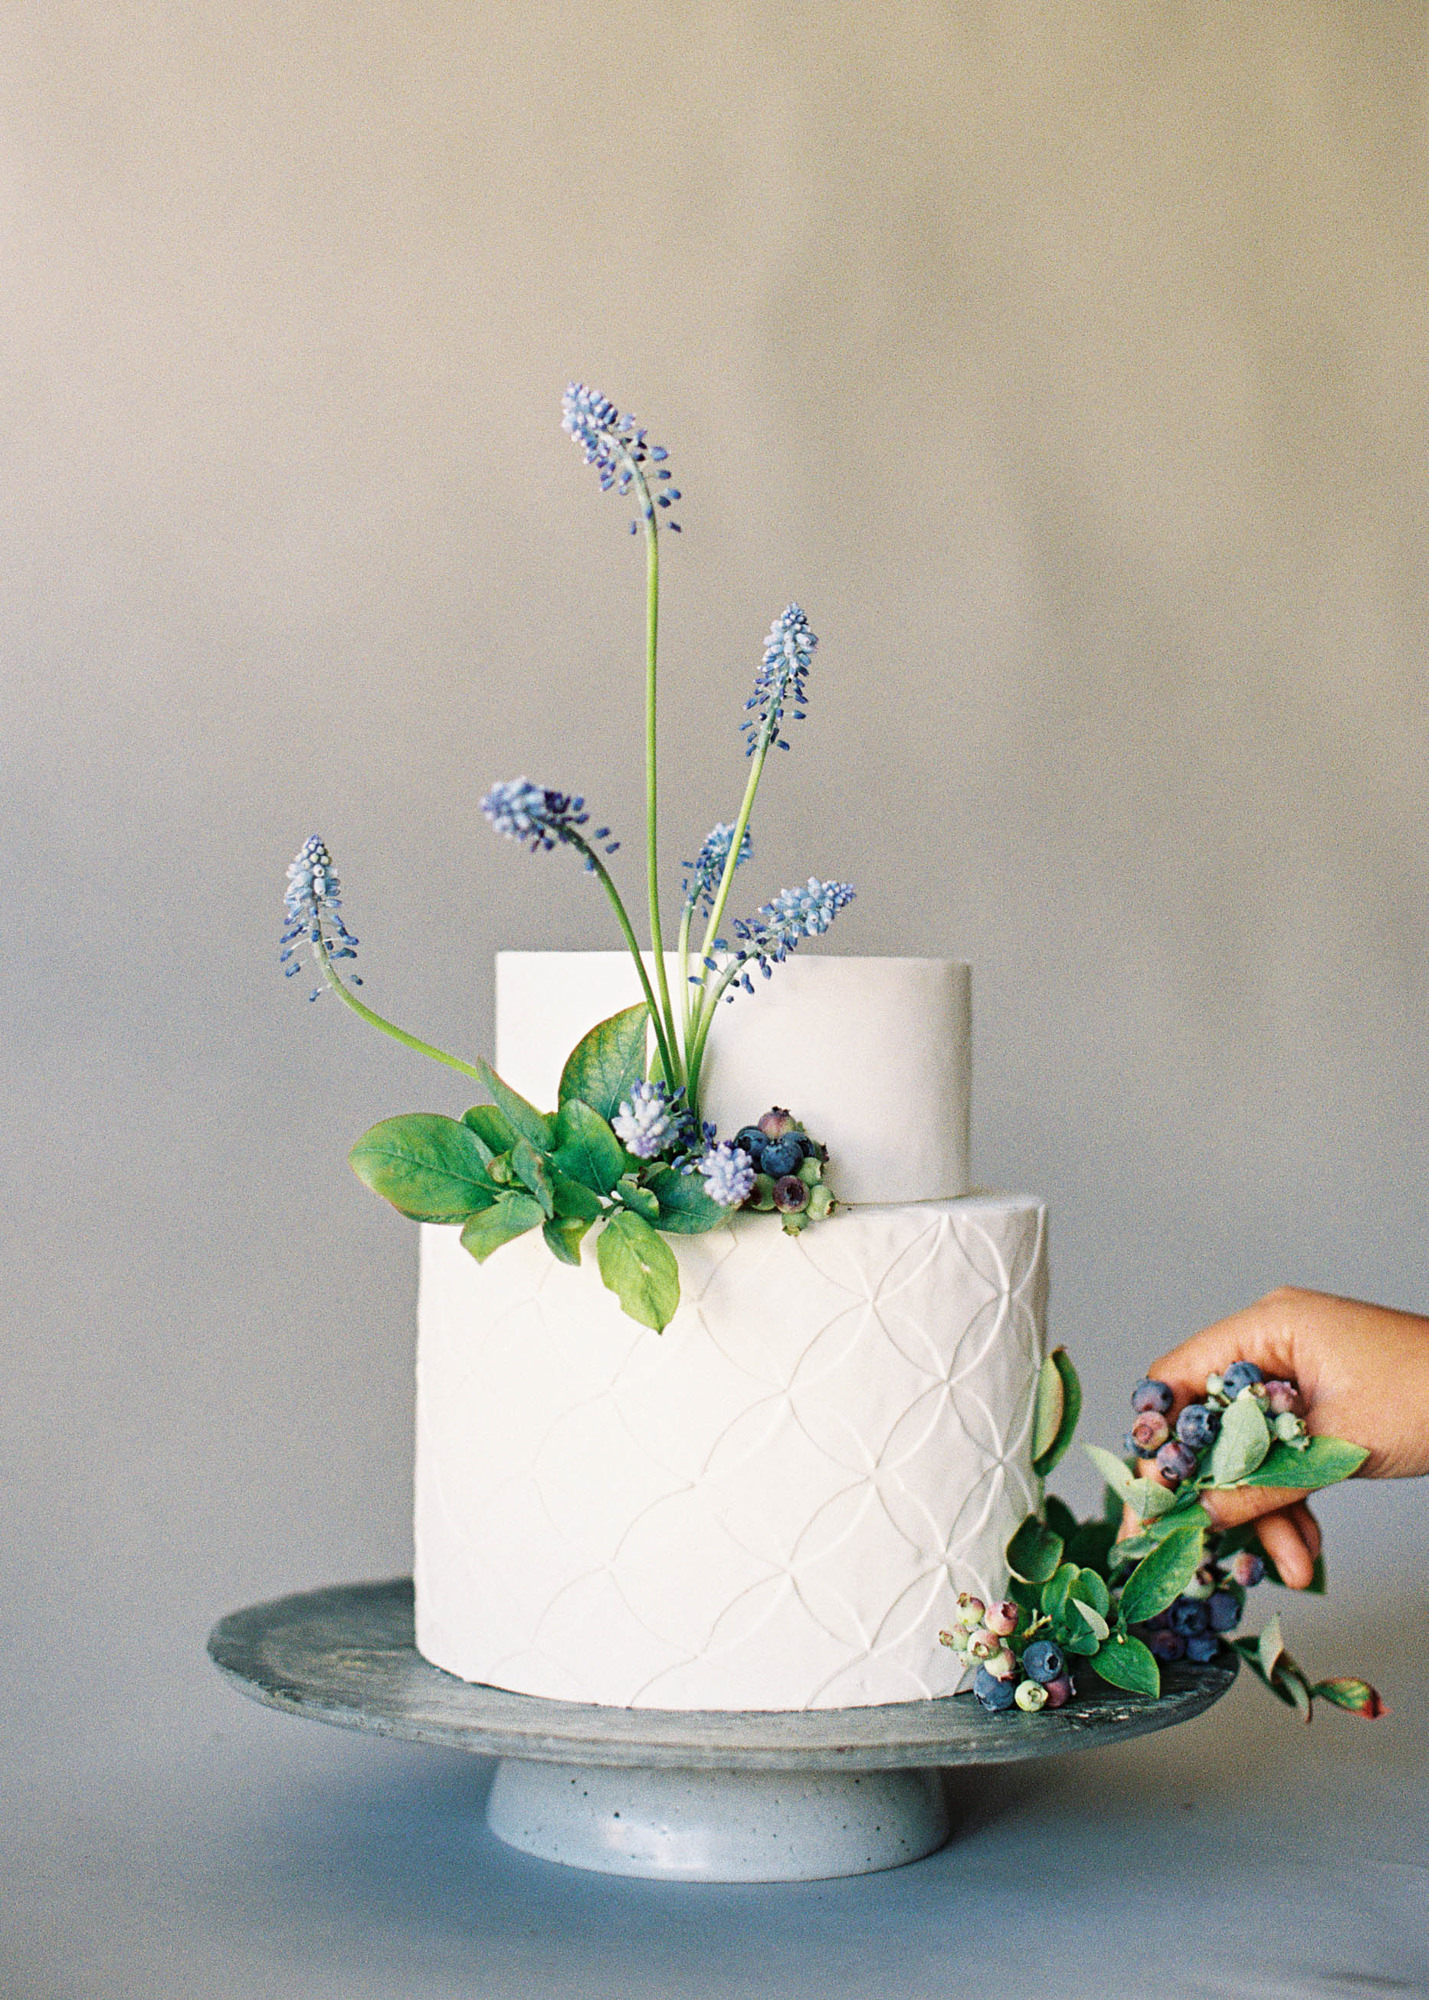 worlds-best-wedding-photos-white-fondant-cake-hyancinth-blueberries-jen-huang-los-angeles-wedding-photographer